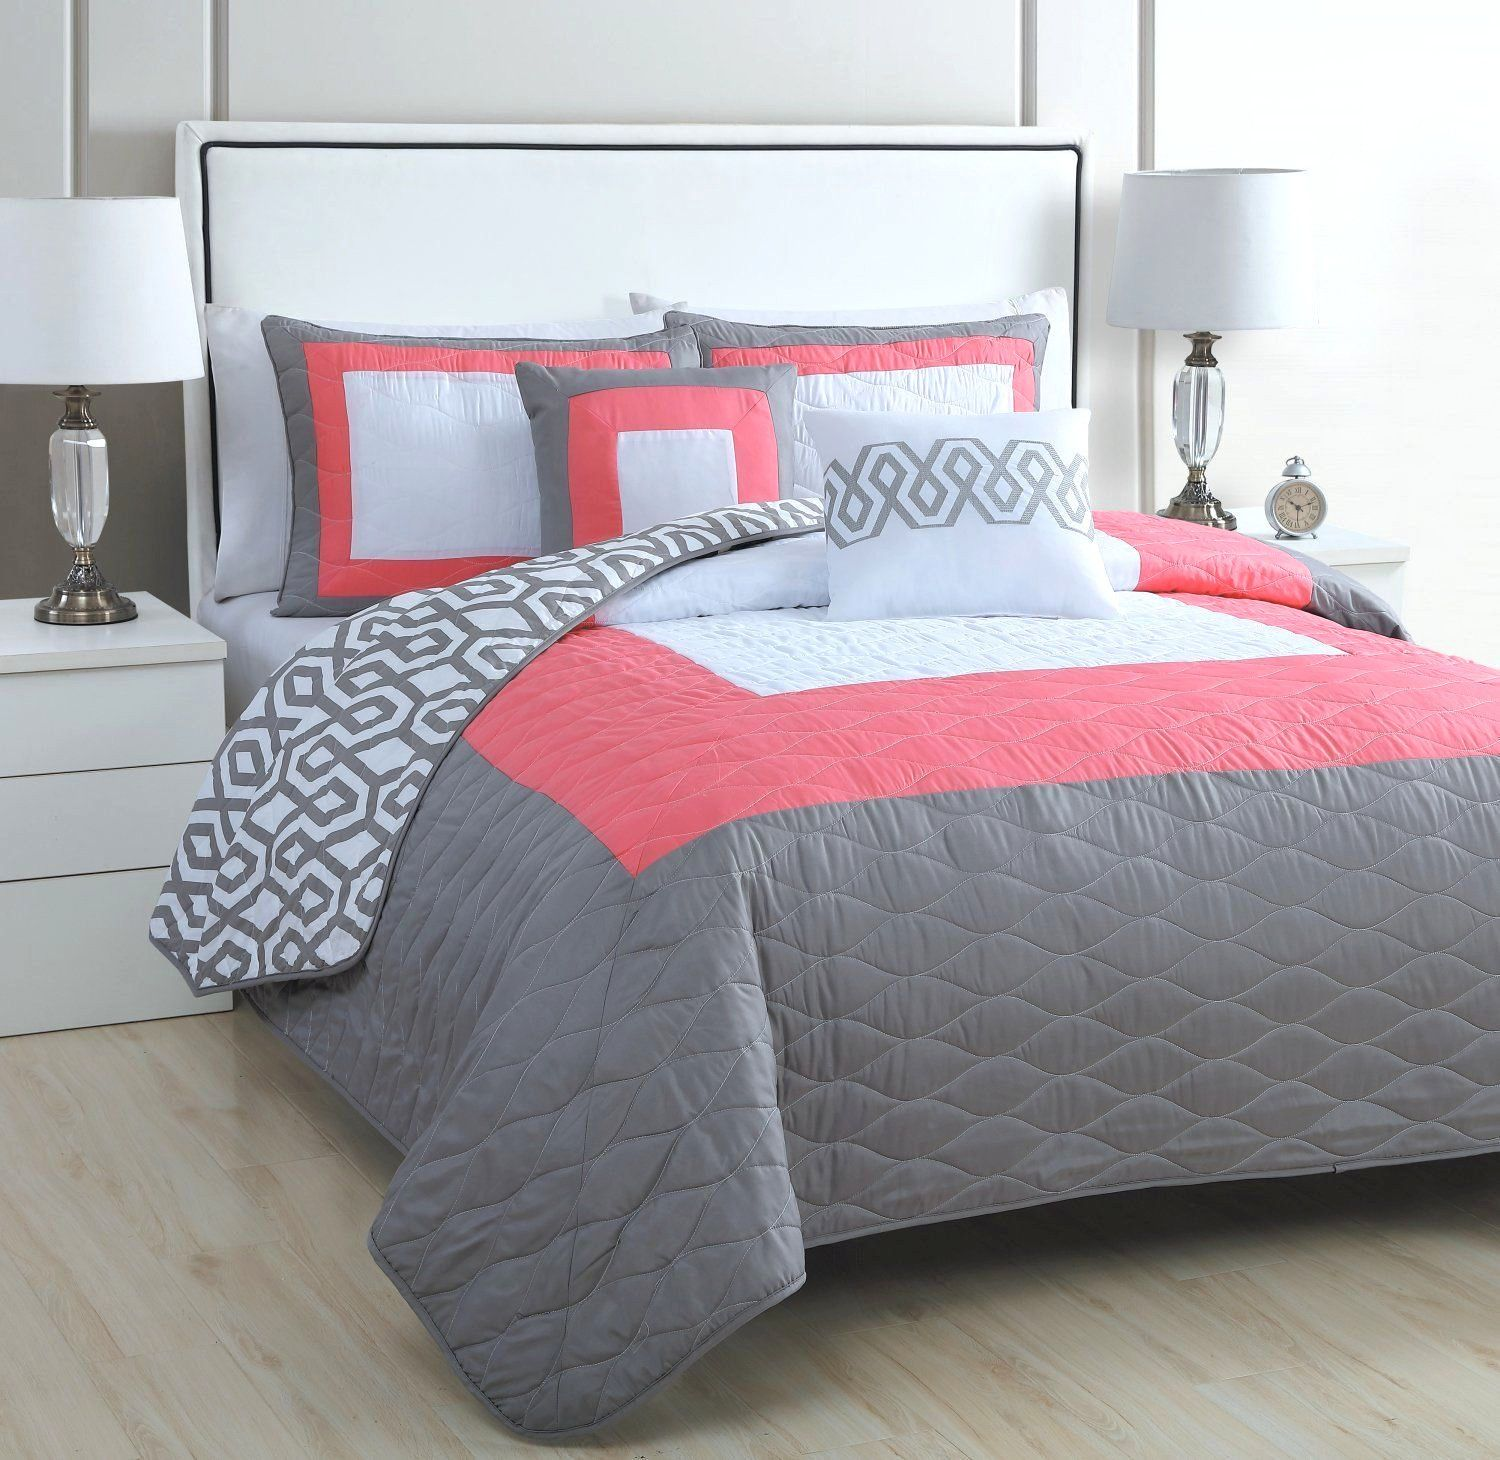 Image result for coral and grey bedding